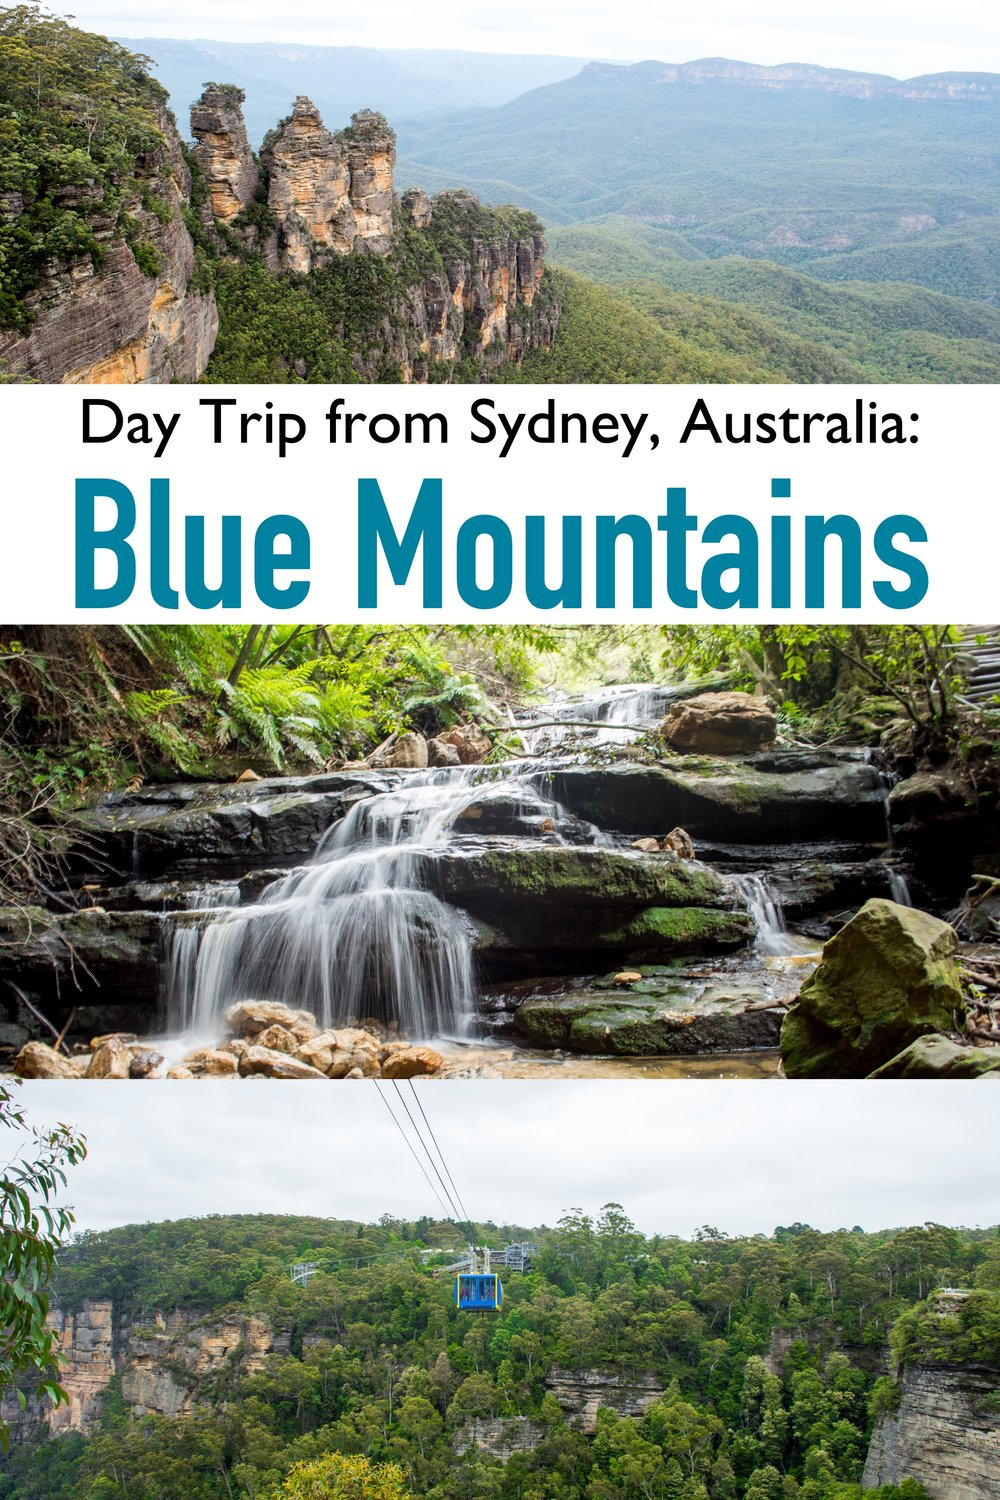 The Blue Mountains National Park is a perfect Day Trip from Sydney, Australia.   Just a 2 hour train ride from downtown, the Blue Mountains are an amazing escape out into nature #bluemountains #Sydney #australia #daytrip